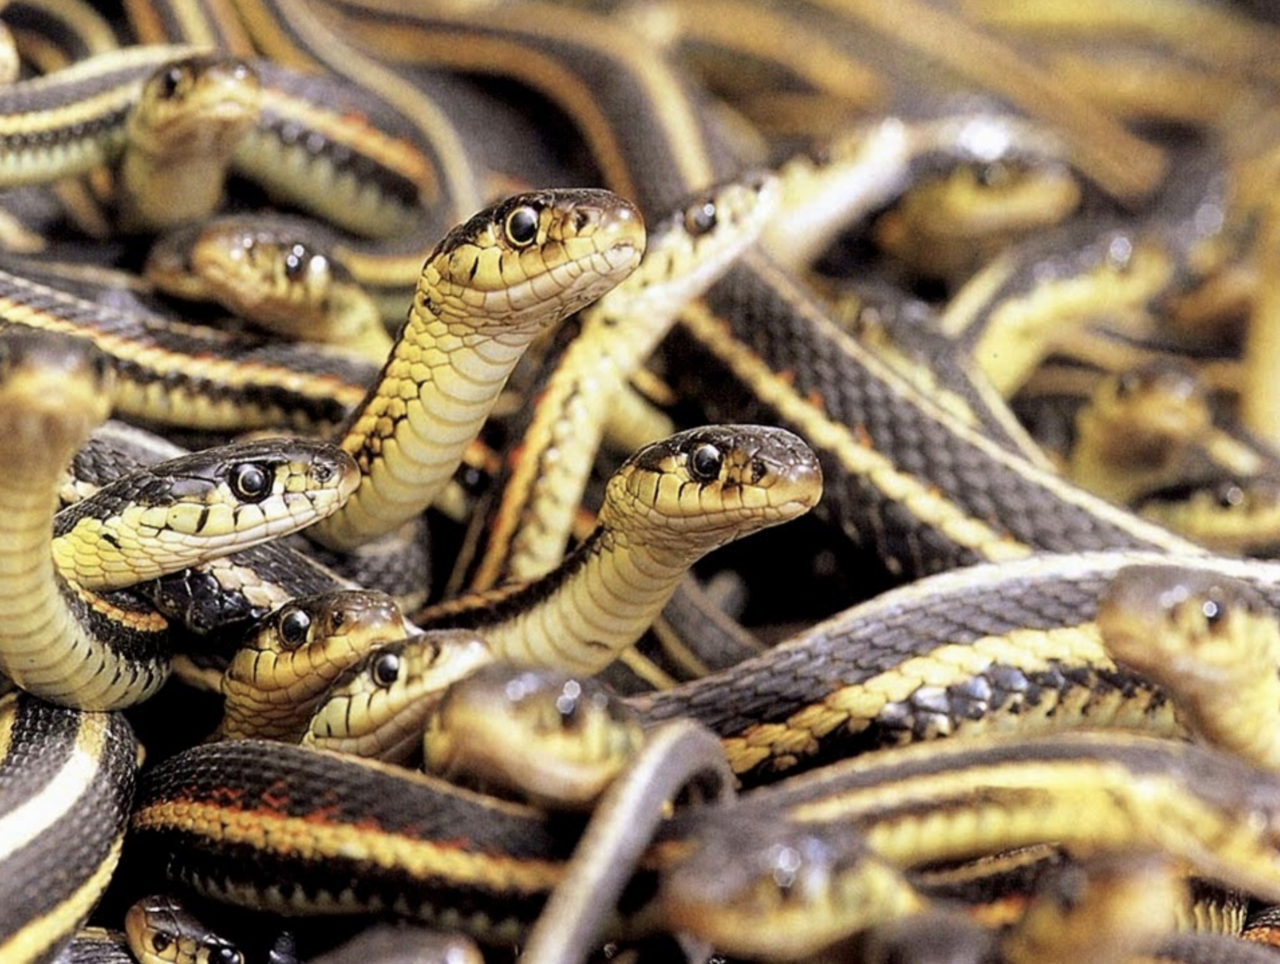 Among the most successful reptiles in North America, garter snakes thrive from the tropics to the edge of the Arctic.